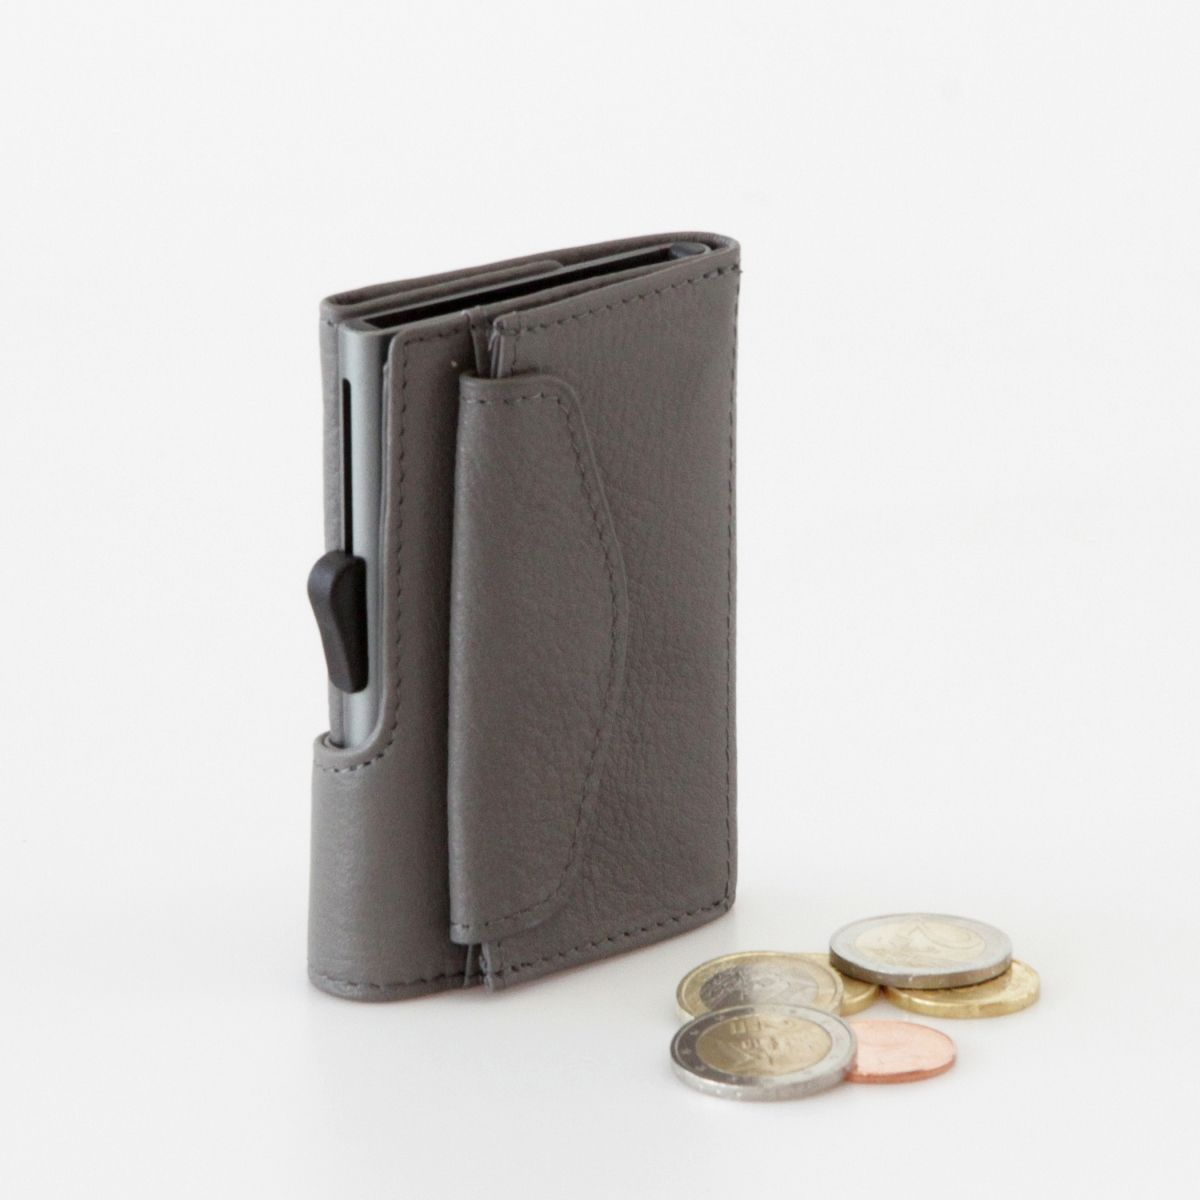 C-Secure Aluminum Card Holder with PU Leather with Coin Pouch - Grey